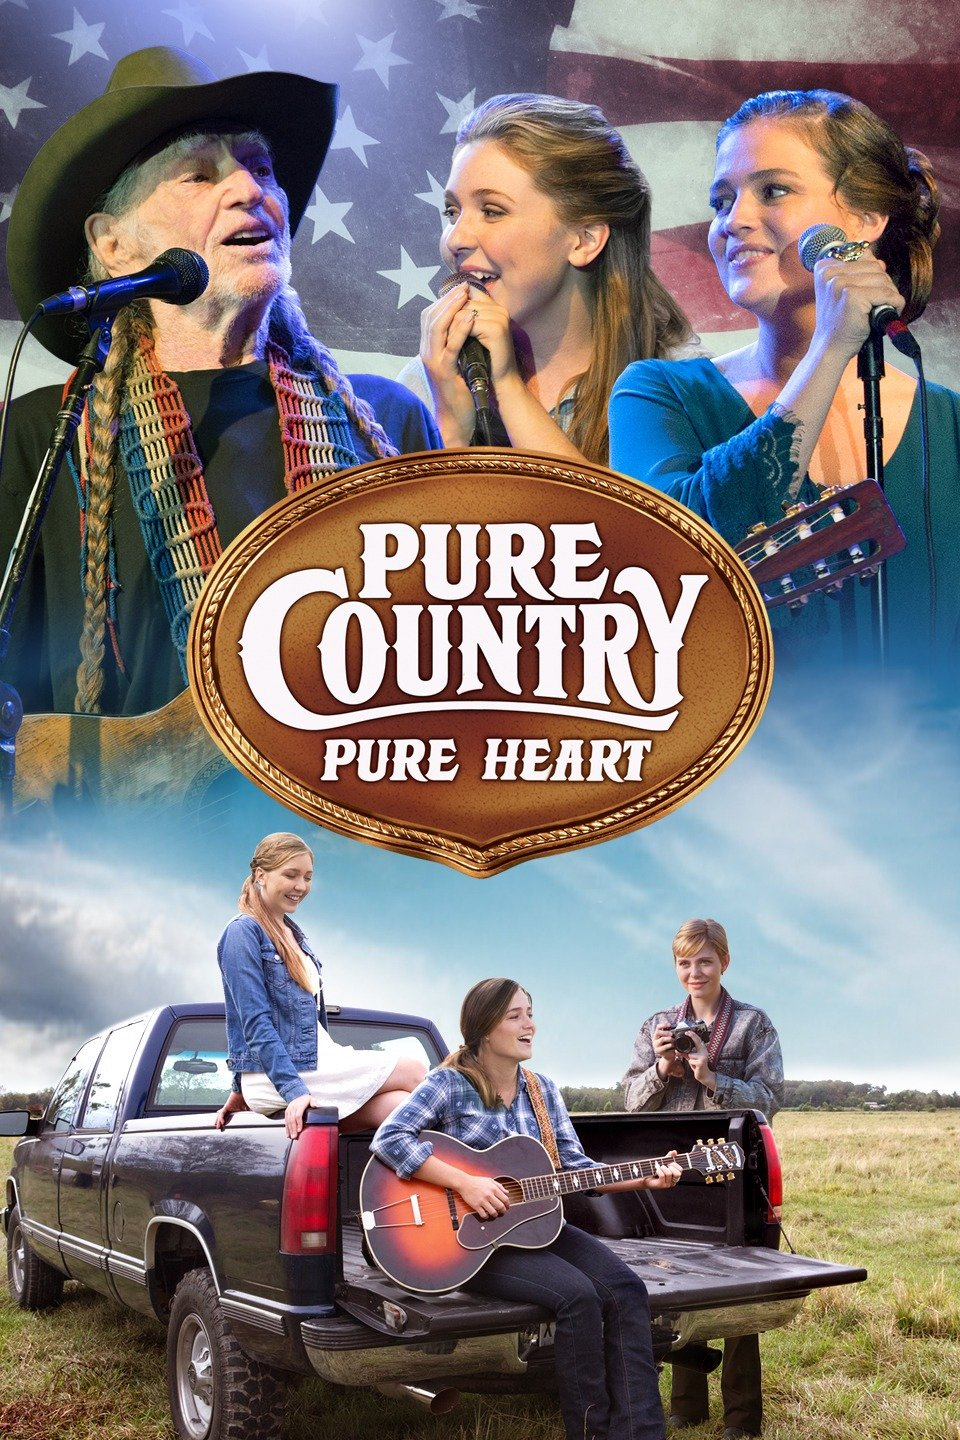 Dara stars in Warner Brothers' Pure Country Pure Heart as Justine Sloan alongside Cozi Zuehlsdorff, Kaitlyn Bausch, Laura Bell Bundy, Ronny Cox, and Willie Nelson.